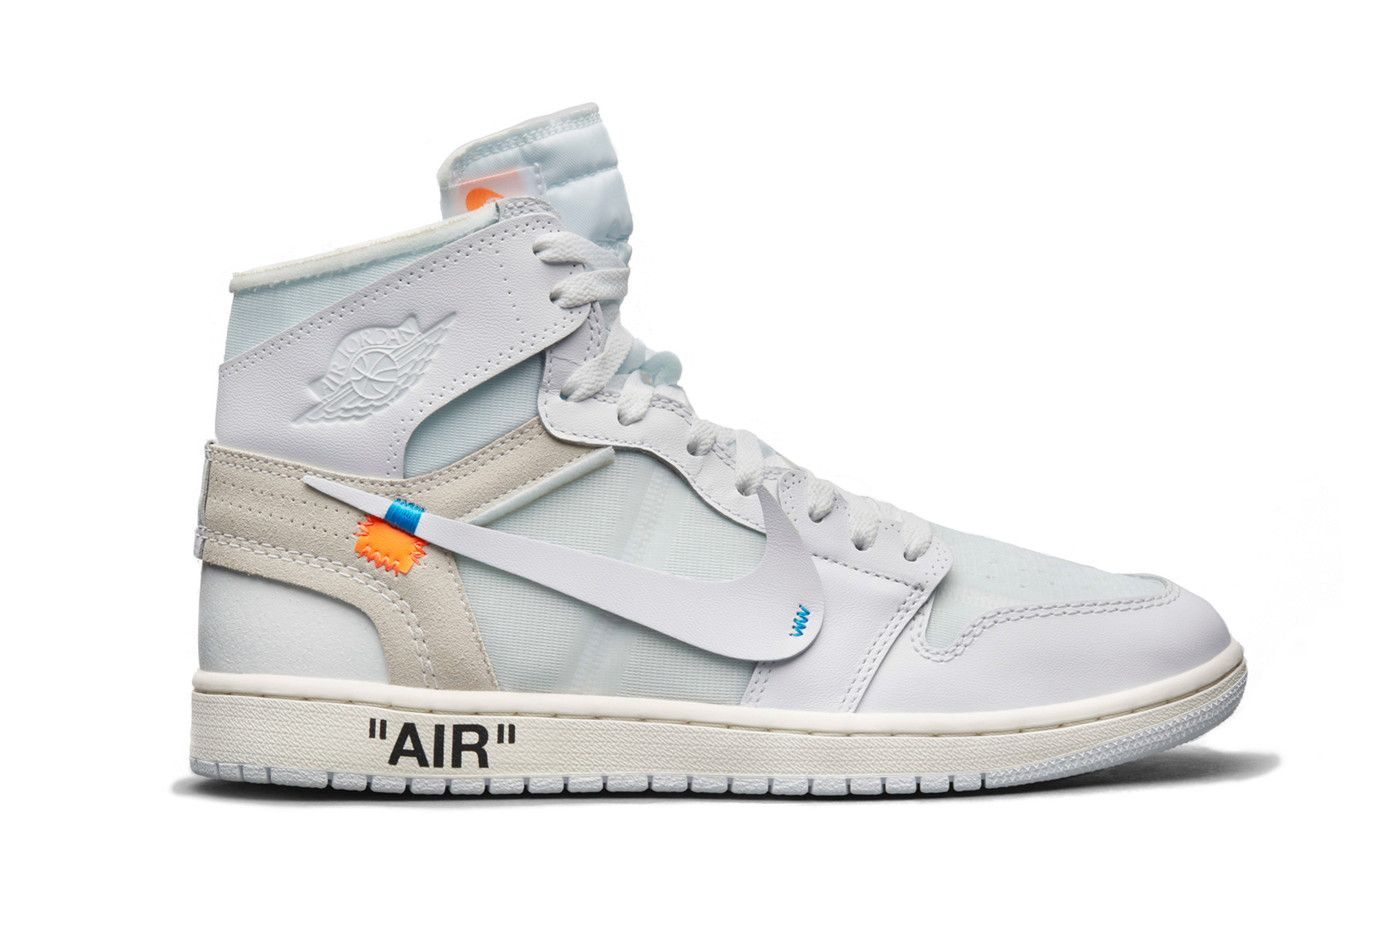 b372f175383a Advent Calendar Day 1  Off-White™ x Air Jordan 1